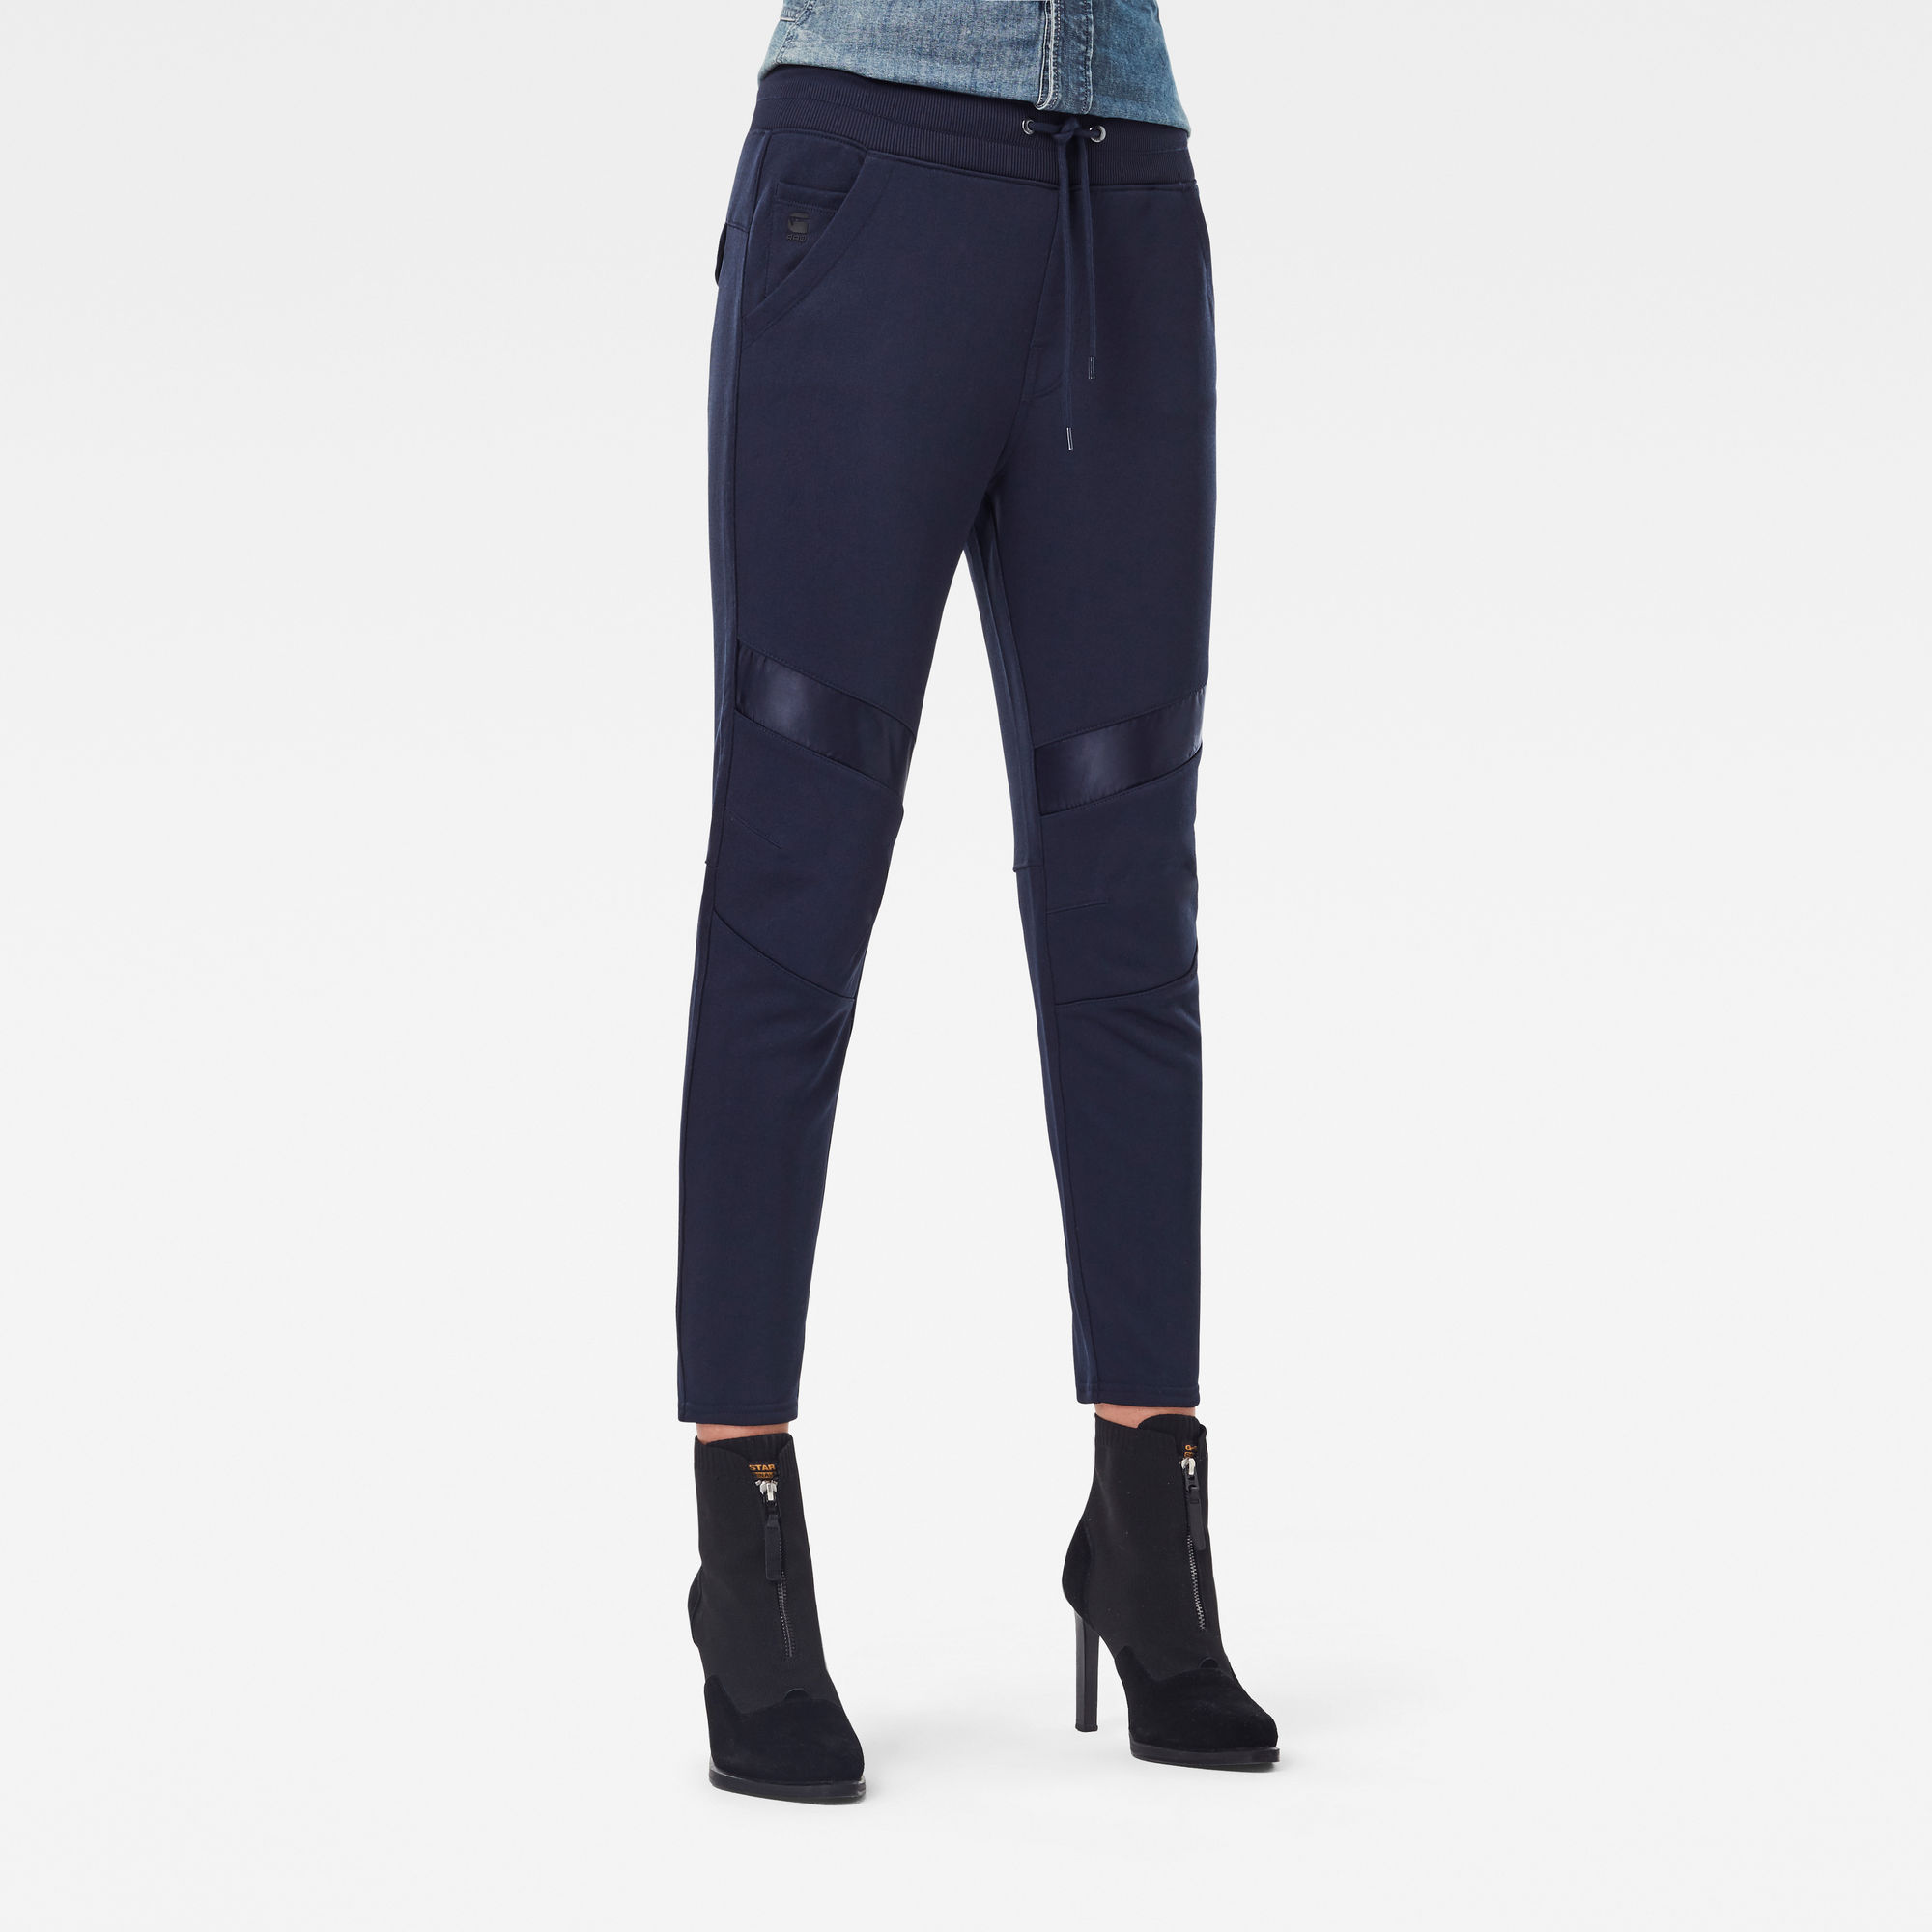 G-Star RAW Dames Motac 3D Tapered Cropped Sweatpants Donkerblauw